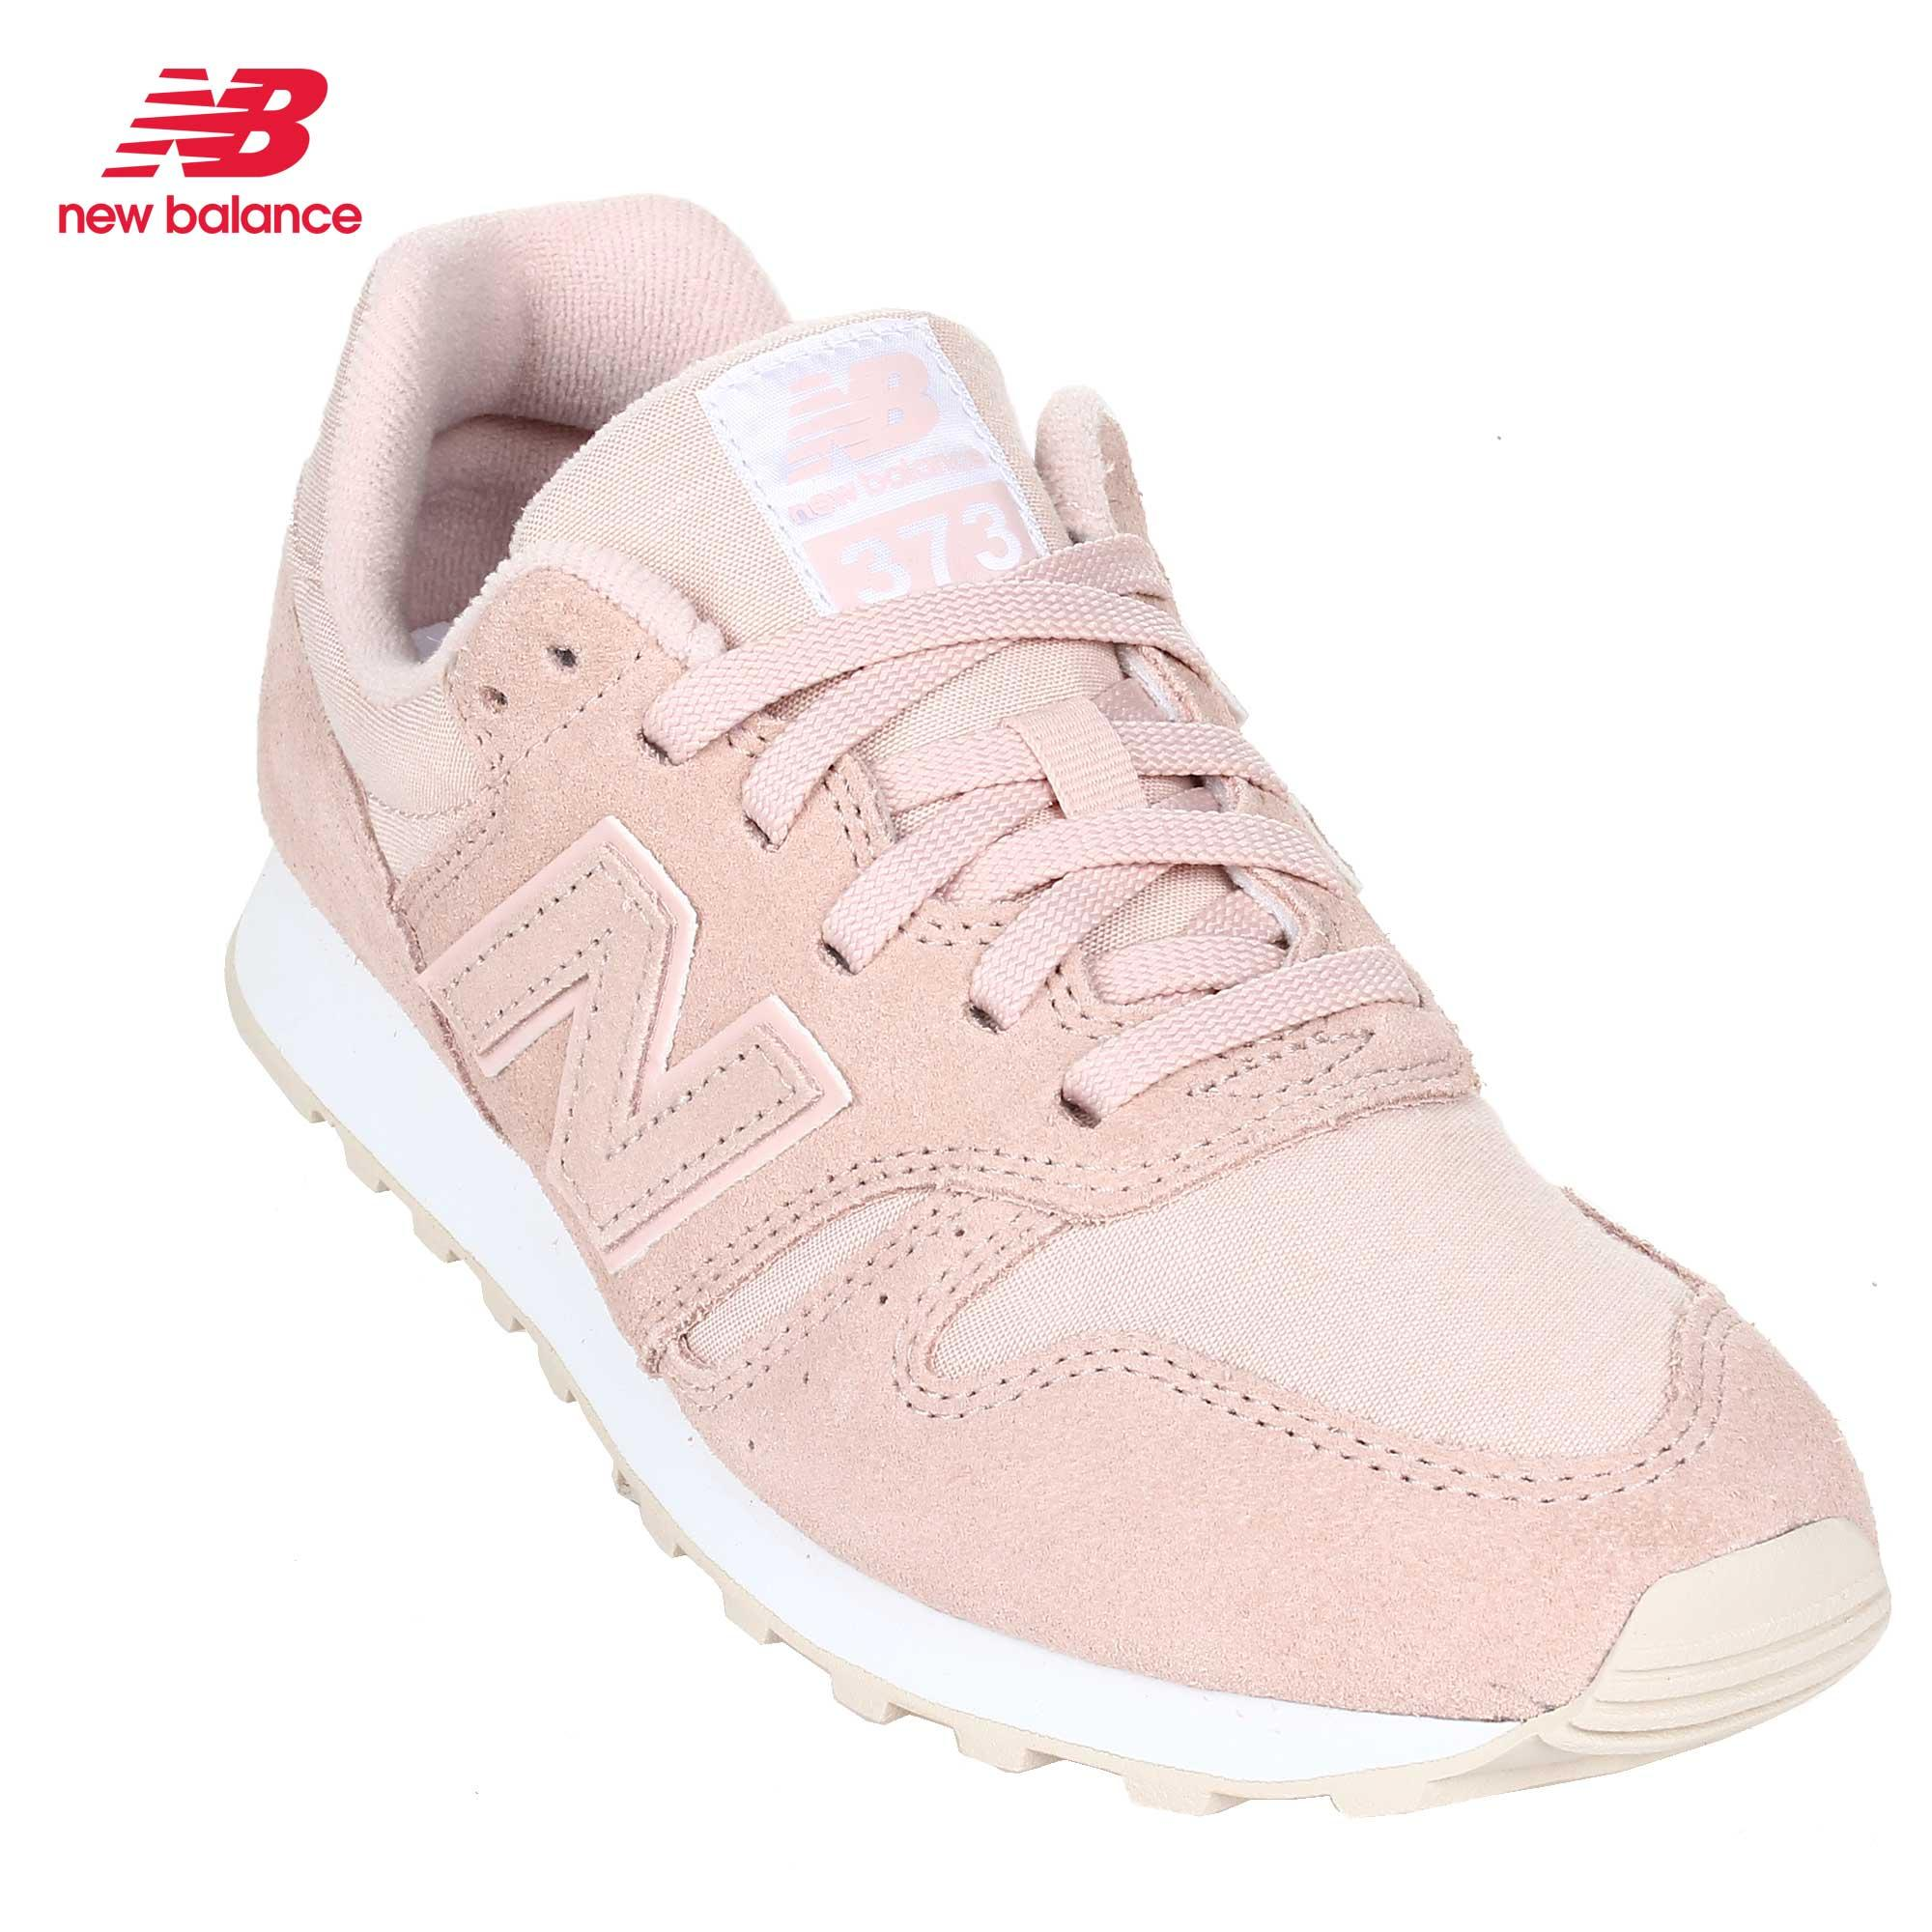 3edef12c New Balance 373 Classics Lifestyle Casual Rubber Shoes for Women